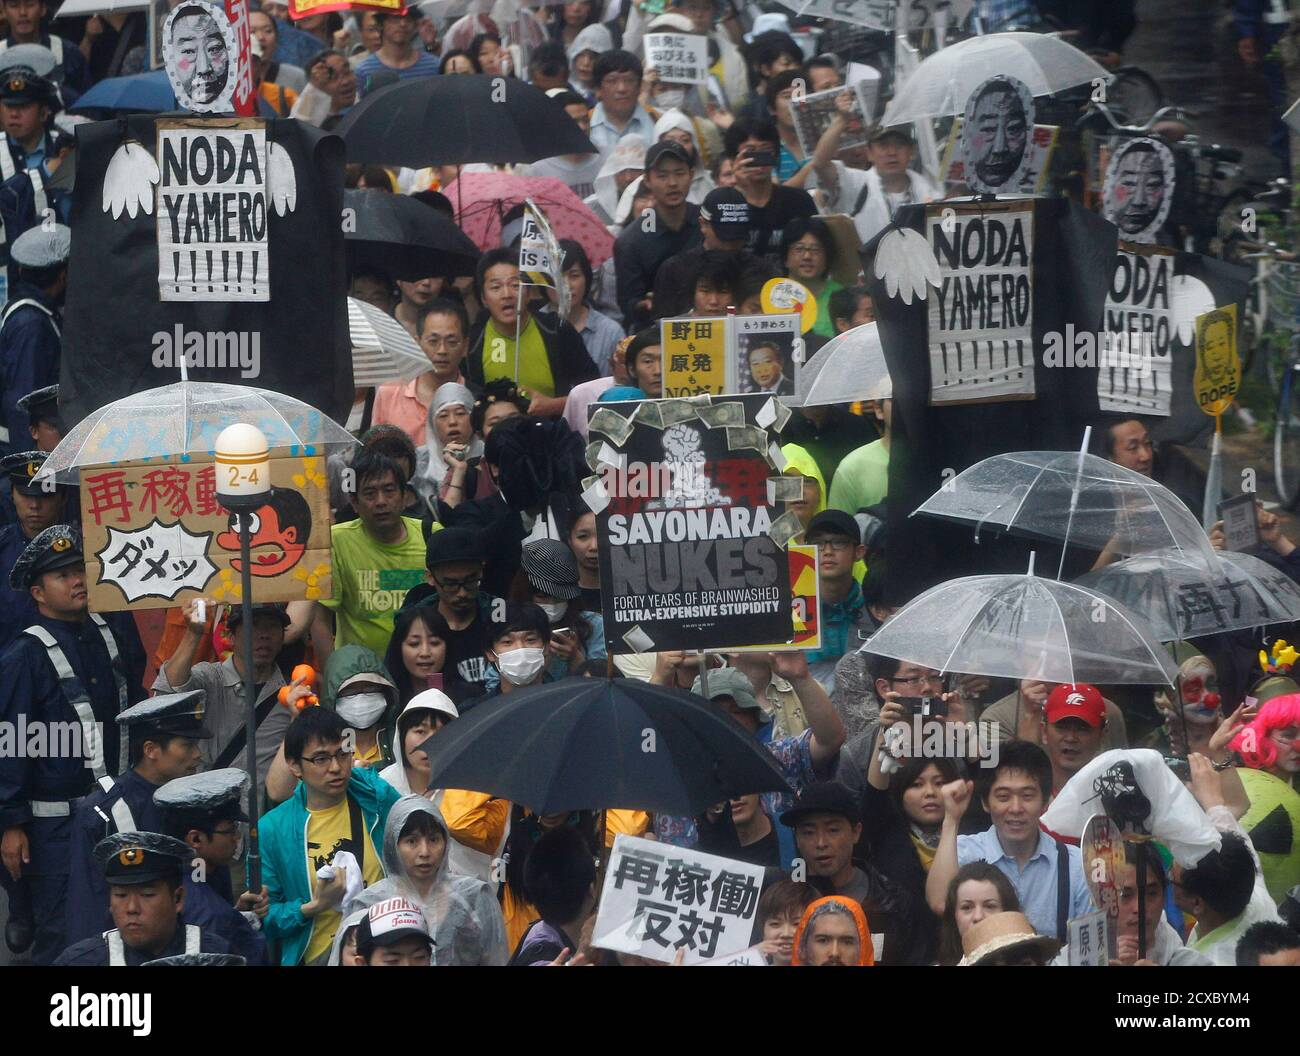 Protesters take part in an anti-nuclear demonstration demanding a stop to the resumption of nuclear power operations in Tokyo July 1, 2012. Japan has approved the restart of the two reactors at the Kansai Electric Power Ohi nuclear plant, northwest of Tokyo on Sunday despite mass public opposition. Kansai Electric Power Co plans to restart the 1,180-megawatt No.3 unit at its Ohi plant, Japan's first nuclear reactor to come back online since the Fukushima crisis. REUTERS/Yuriko Nakao (JAPAN - Tags: POLITICS CIVIL UNREST) Stock Photo